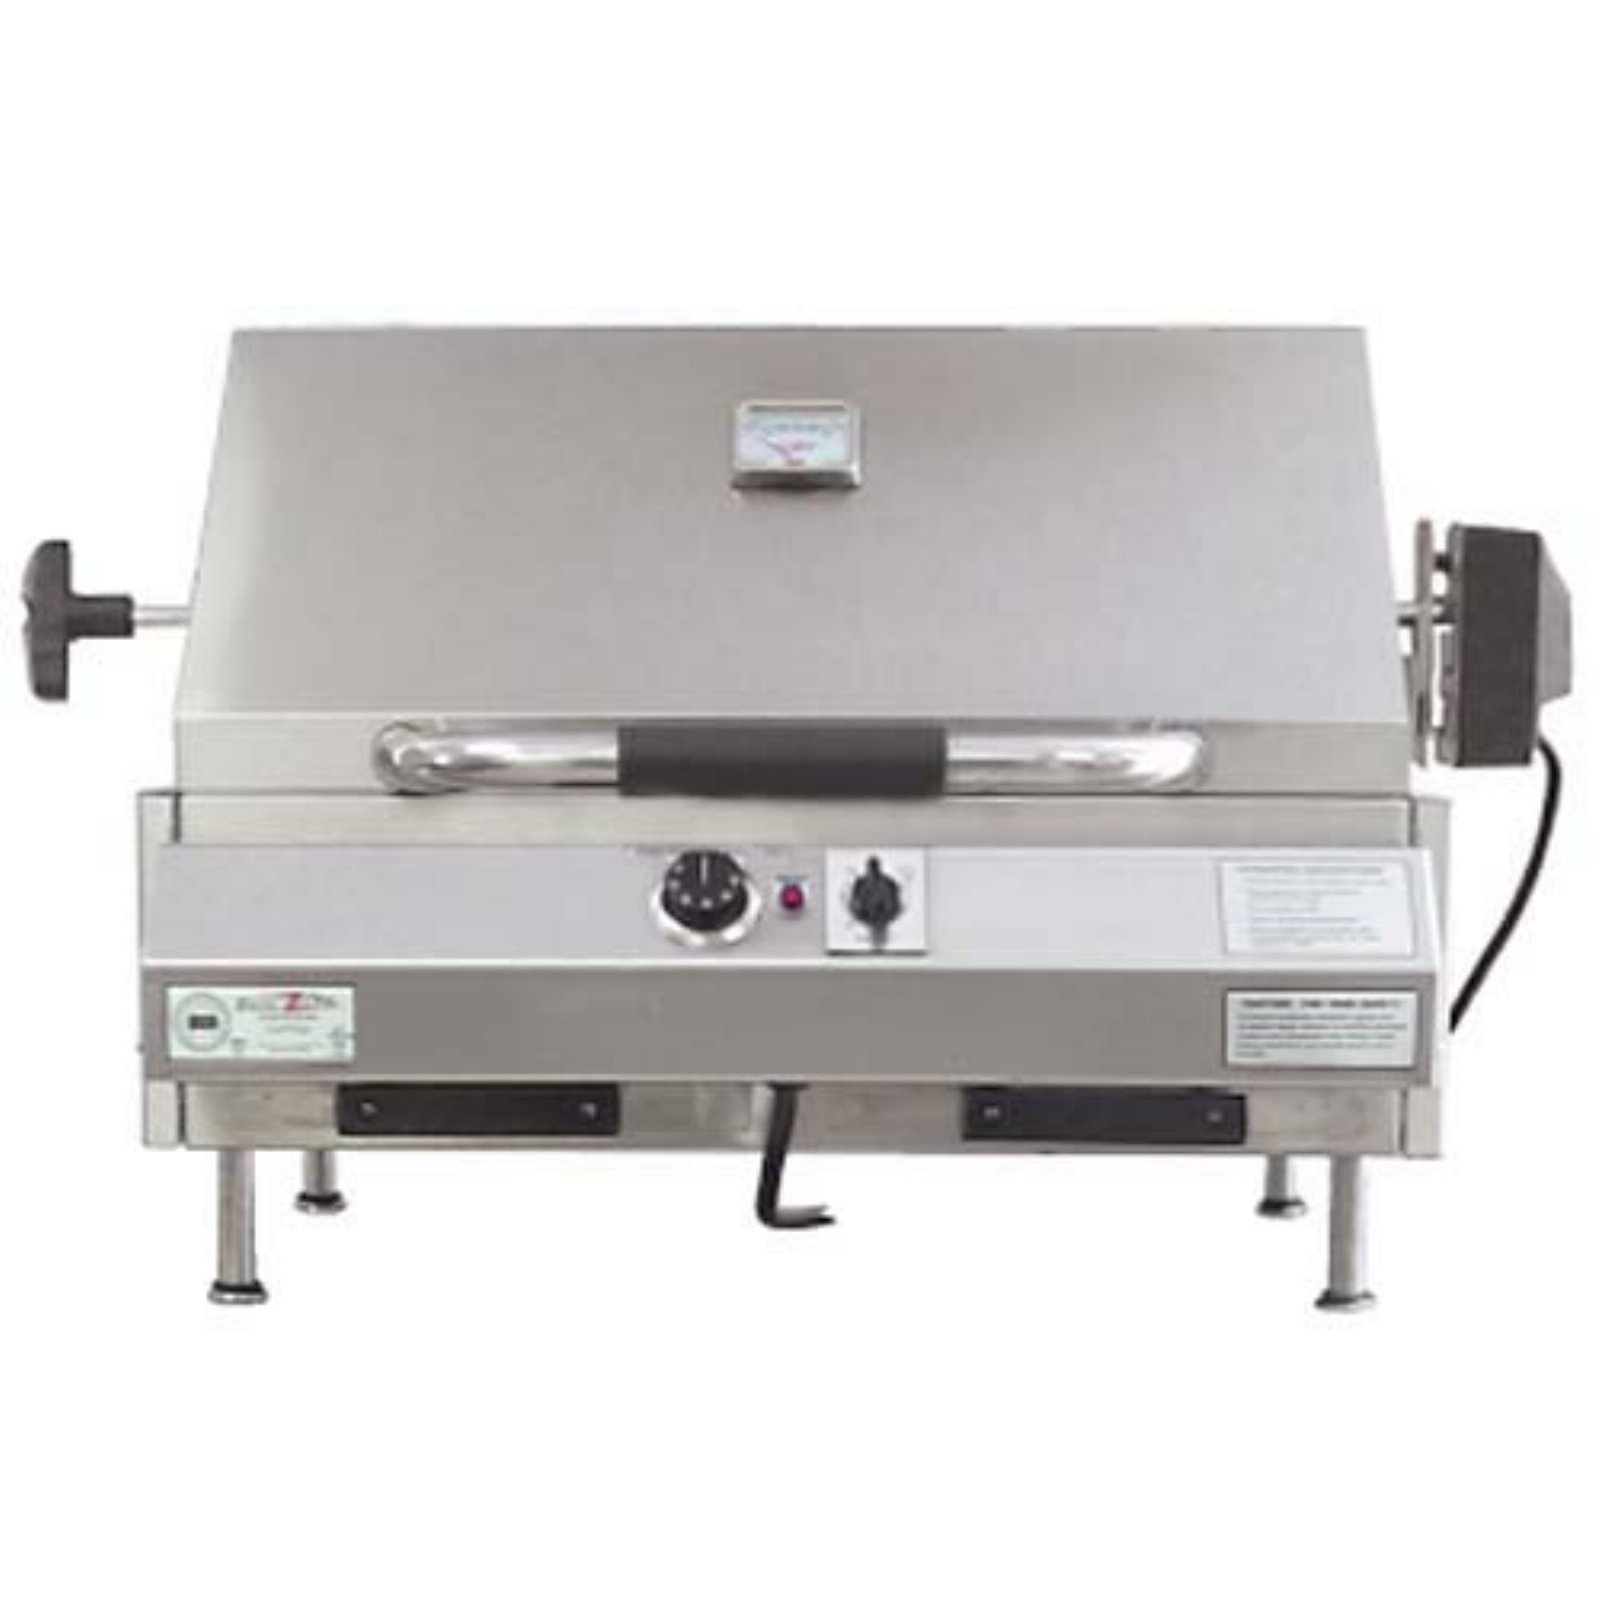 Electri-Chef 24 in. Tabletop Electric Grill by Electri - Chef Grill